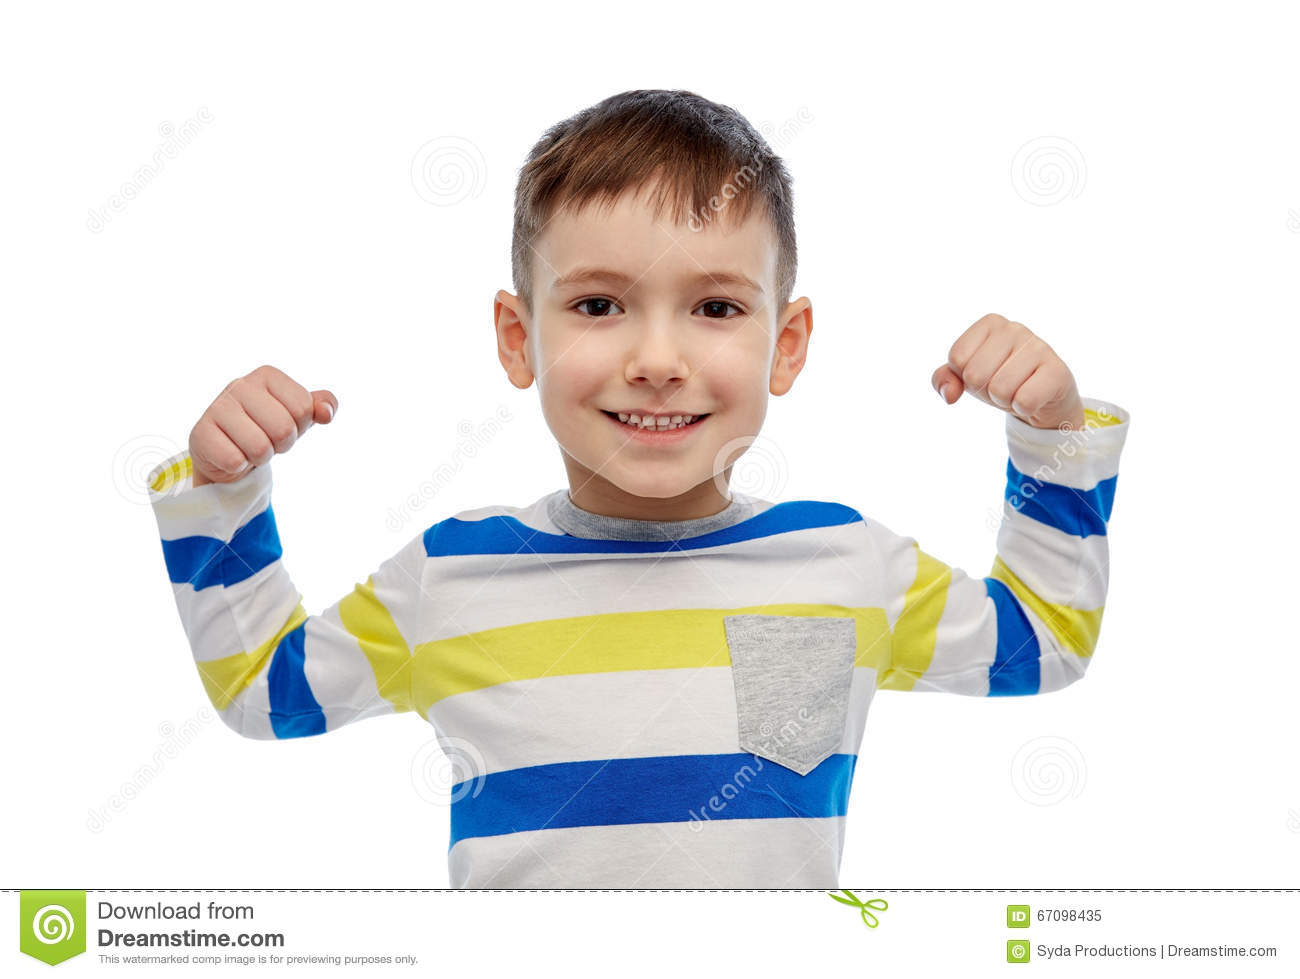 c60a716e5d770 Childhood, power, gesture and people concept - happy smiling little boy  with raised hand